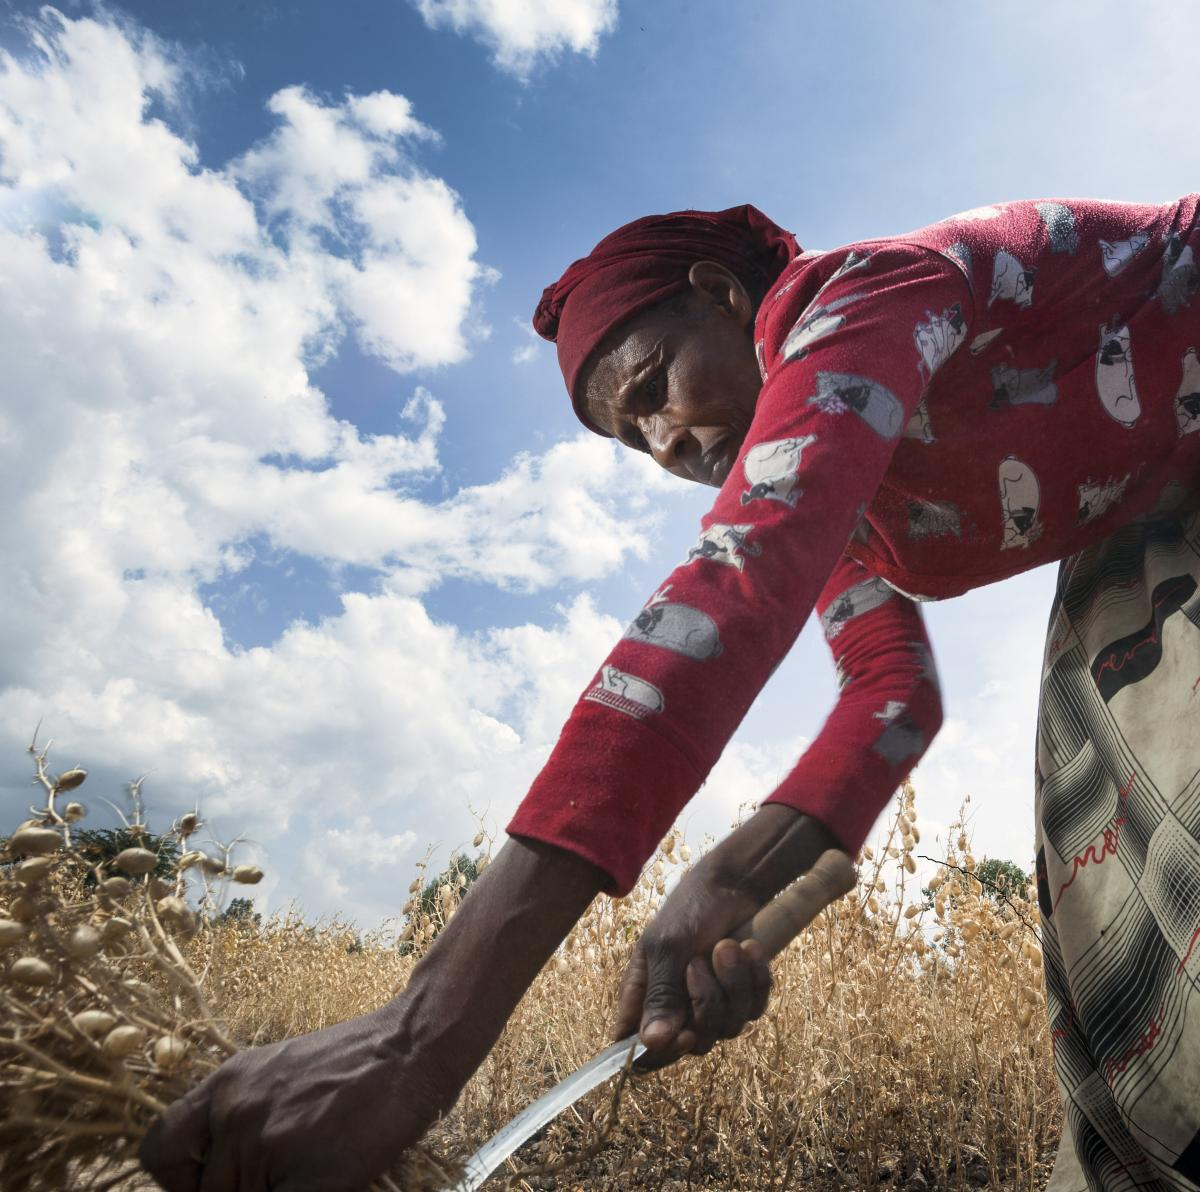 Ethiopian woman farmer cutting wheat